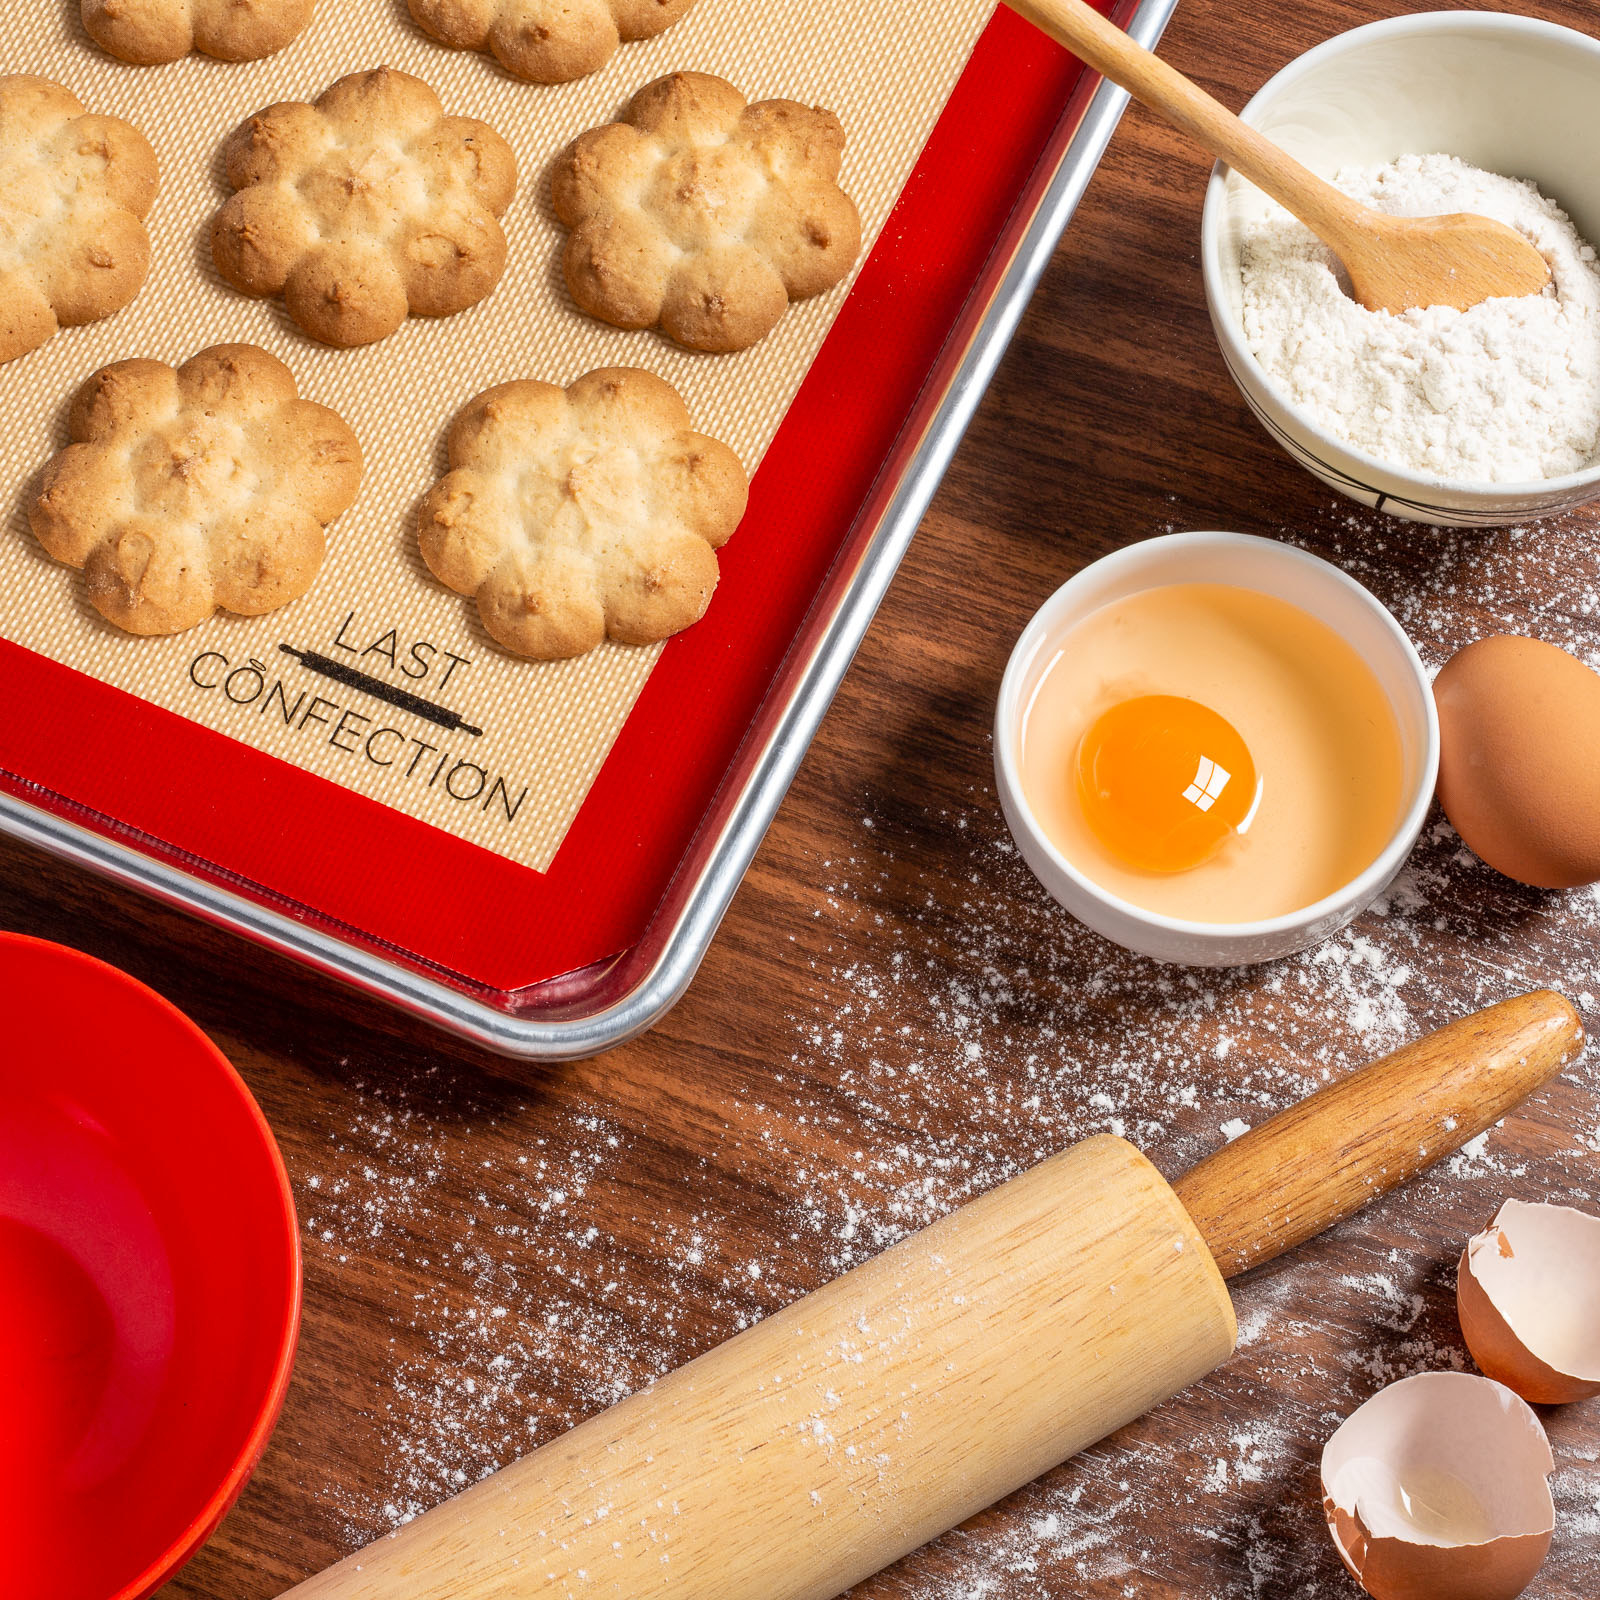 Product photo showing Last Confection Silicone Baking sheets on a sheet pan with cookies